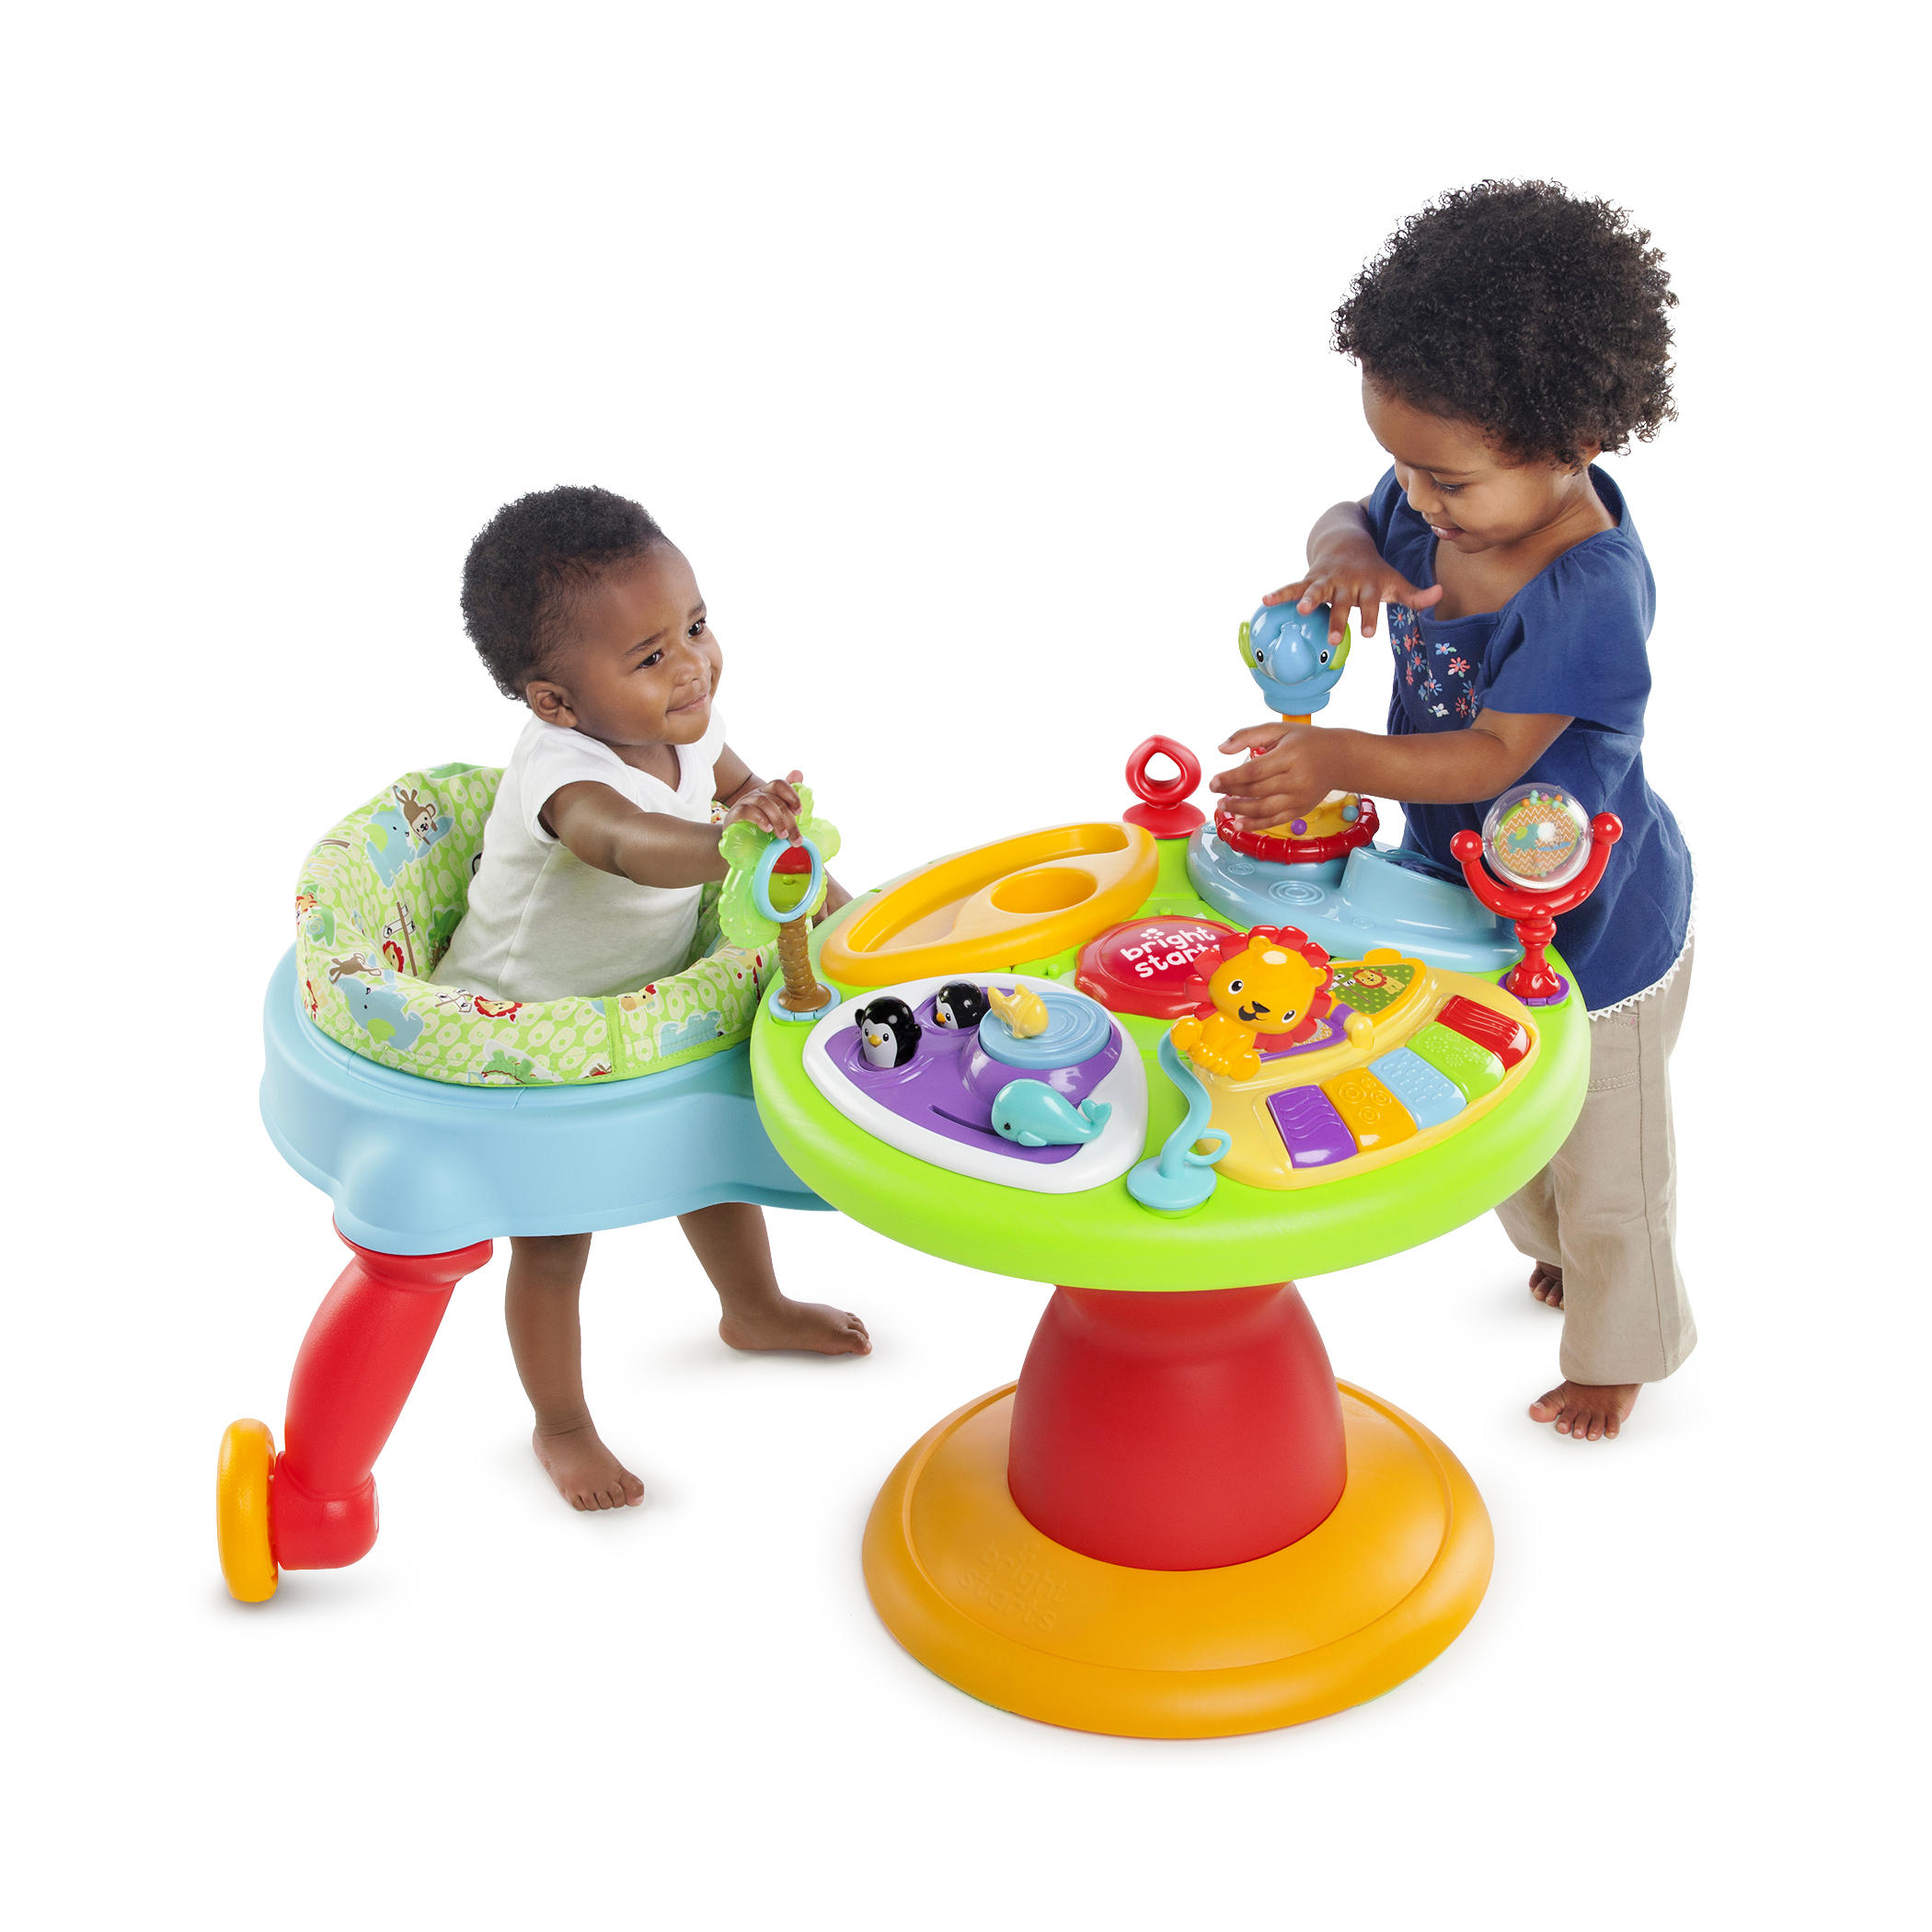 3-in-1 Around We Go™ Activity Center